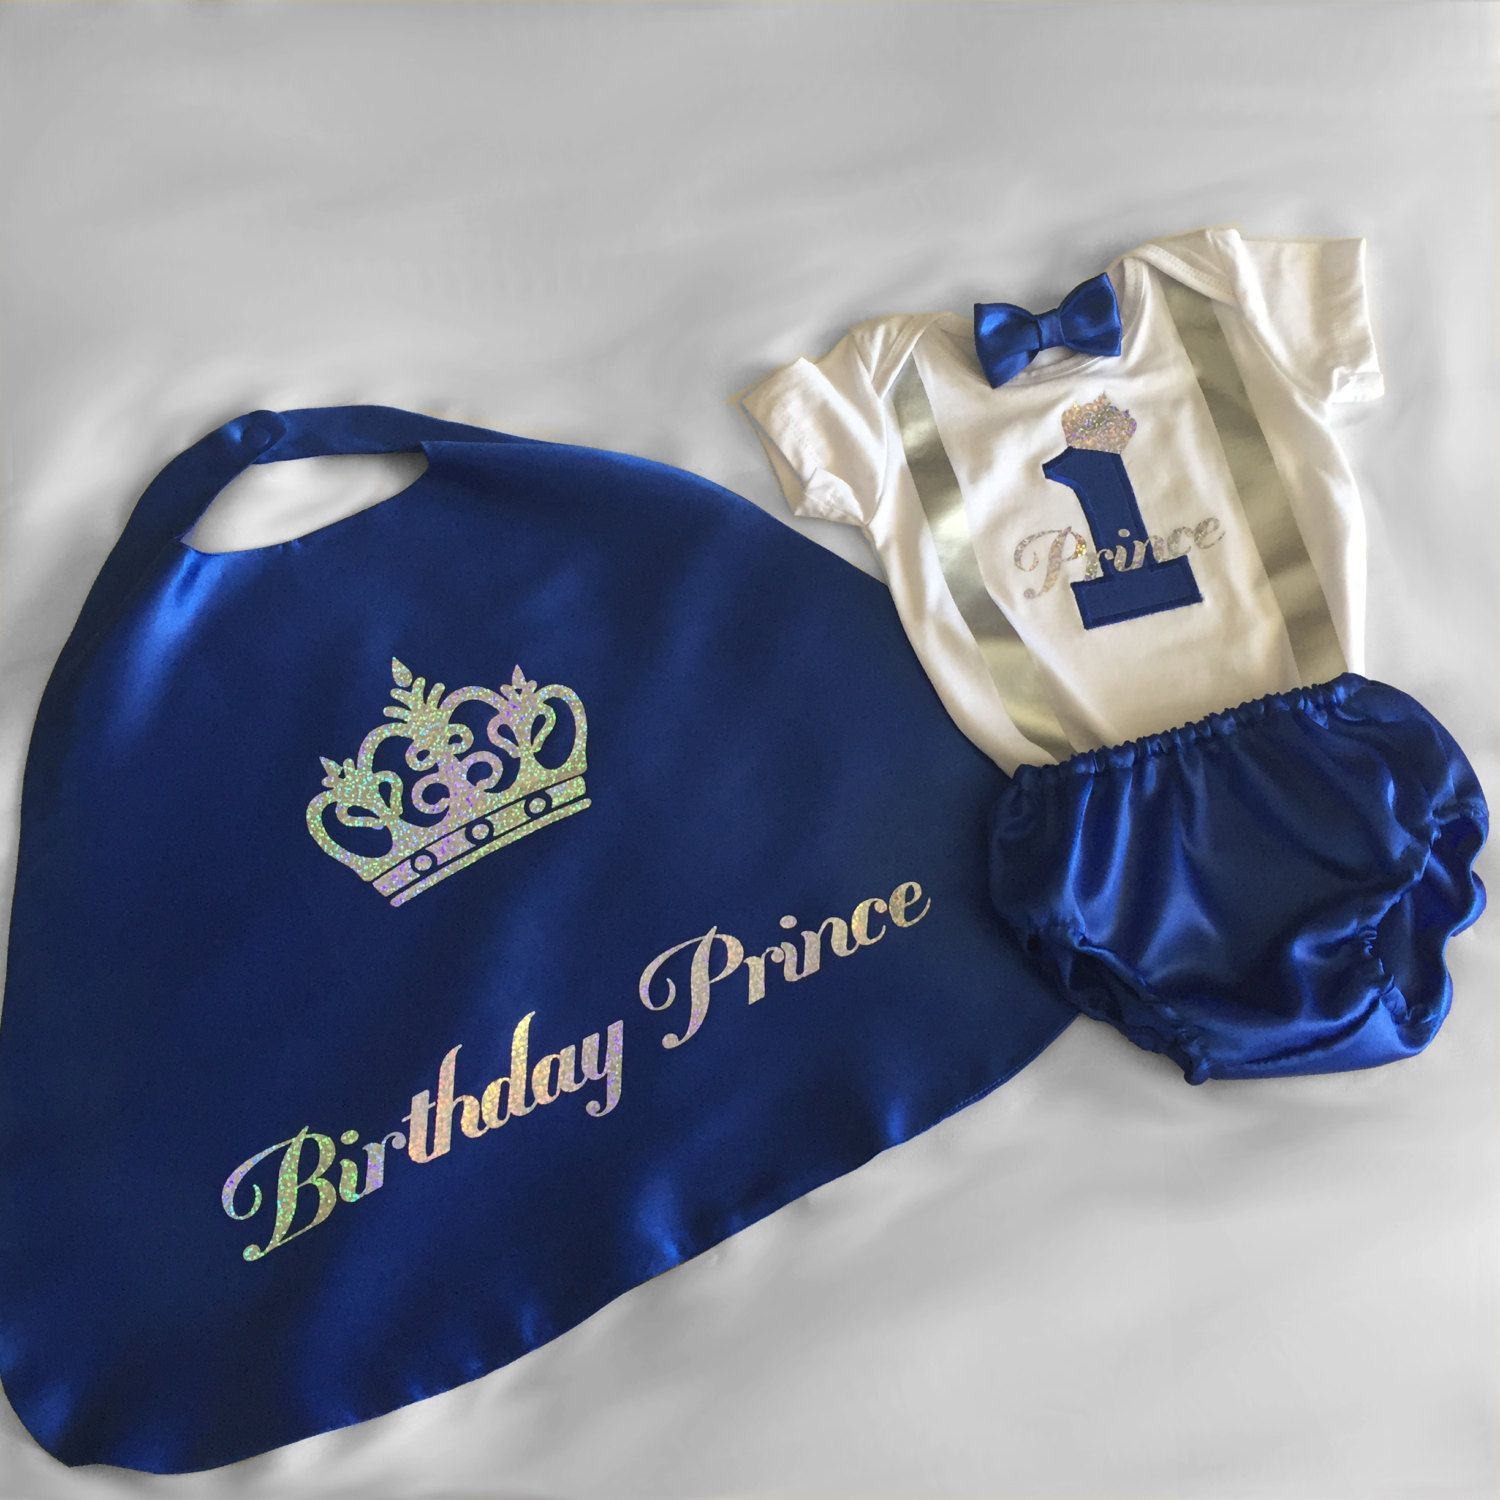 0fbbf4092 ... Prince Personalised Baby boy 1st Birthday Outfit...1st Birthday dress  up...Cake Smash Outfit...Baby photo shoot outfit by BuBBlingBoutique on Etsy